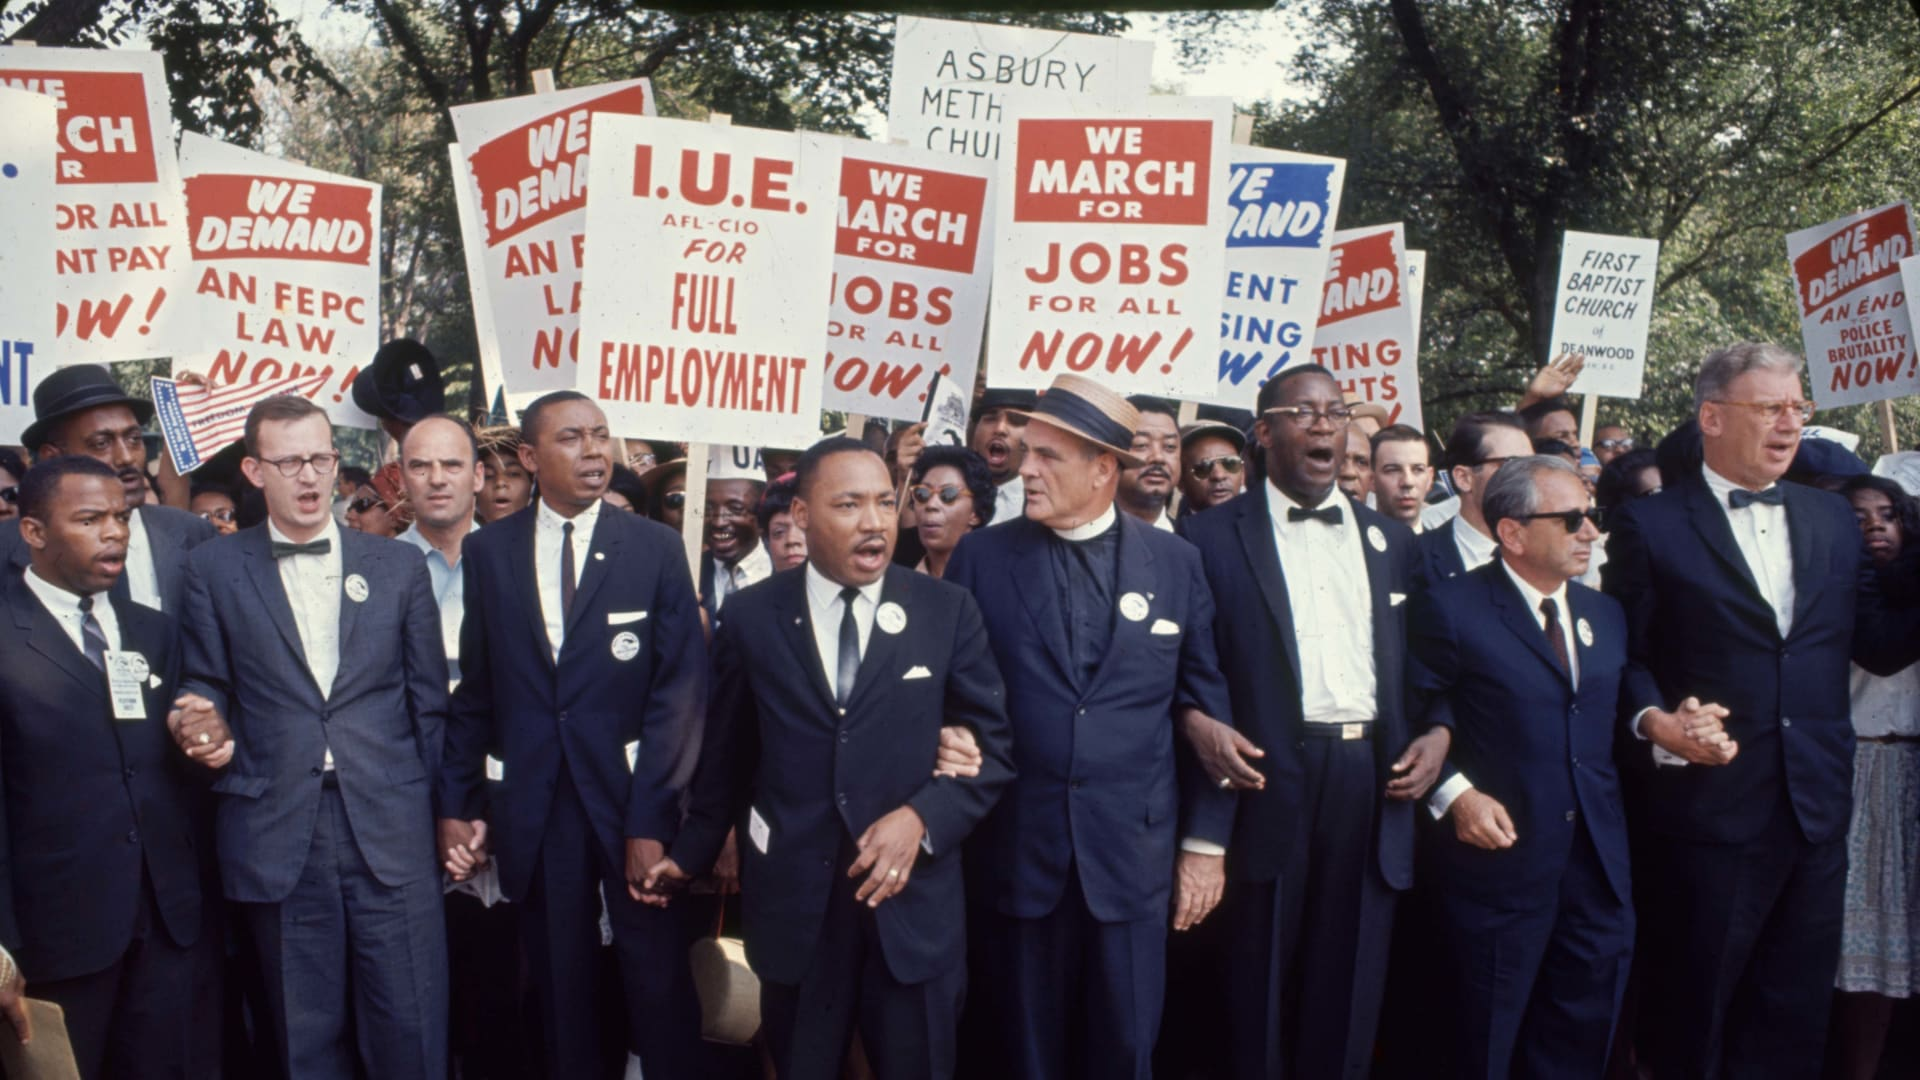 View of some of the leaders of the March on Washington for Jobs and Freedom, in Washington, D.C., on August 28, 1963. Among those pictured are, front row from left, John Lewis, Mathew Ahmann, Floyd B. McKissick (1922-1991), Dr. Martin Luther King Jr. (1929-1968), Reverend Eugene Carson Blake (1906-1985), Cleveland Robinson (1914-1995), and Rabbi Joachim Prinz (1902-1988) (in sunglasses). The march provided the setting for Dr. King's iconic 'I Have a Dream' speech.